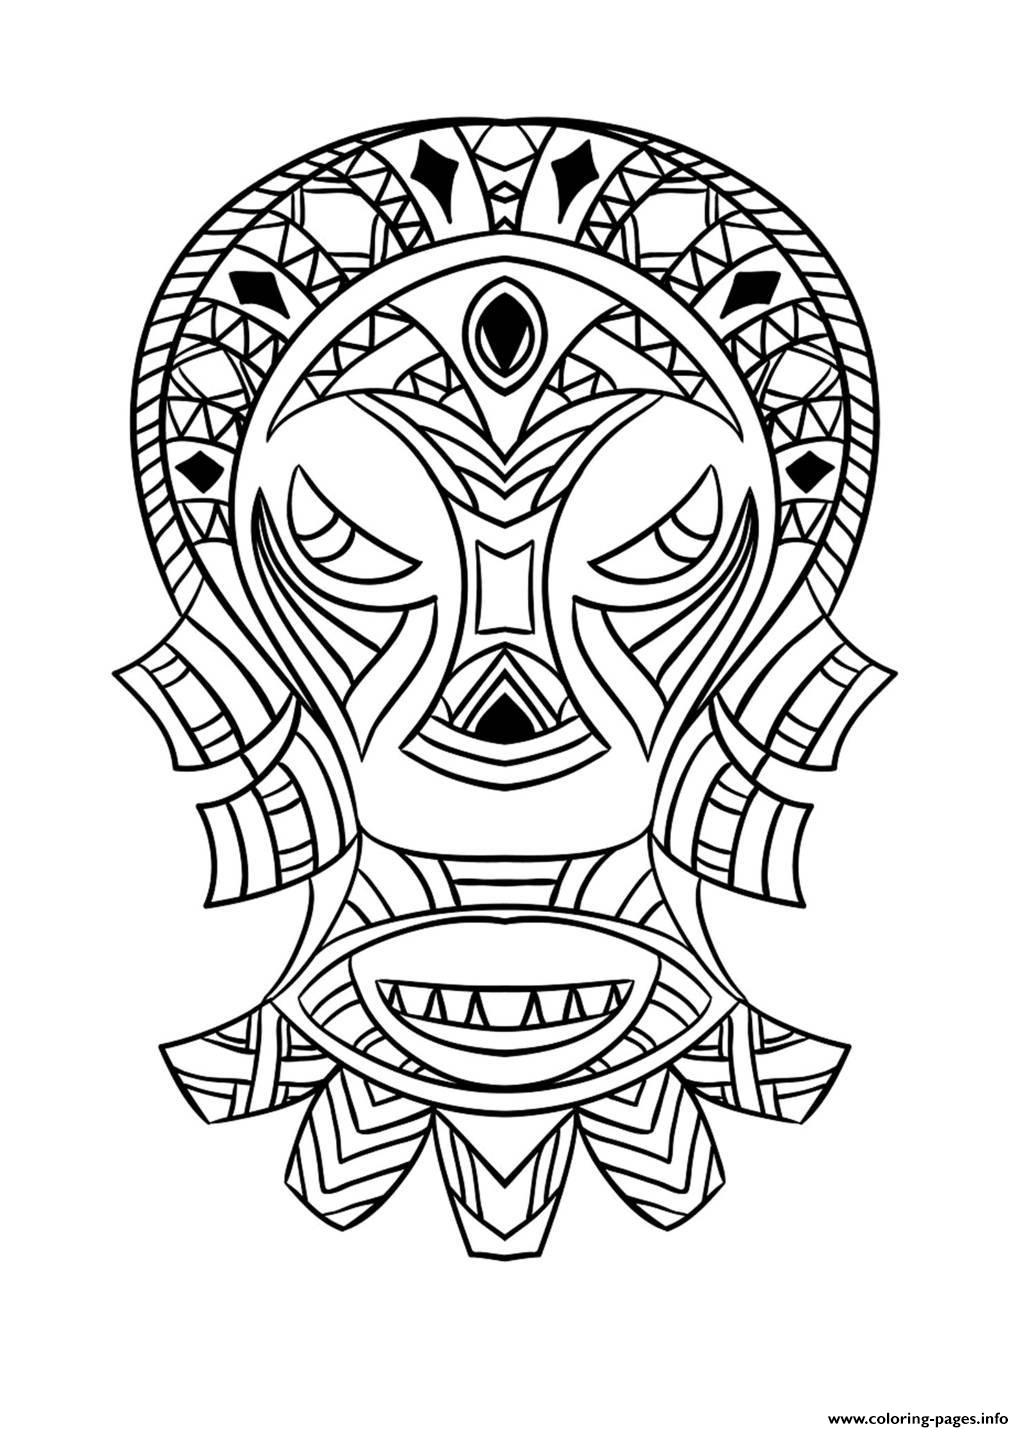 Uncategorized African Mask Coloring Pages african mask coloring page colouring pages congo coloring